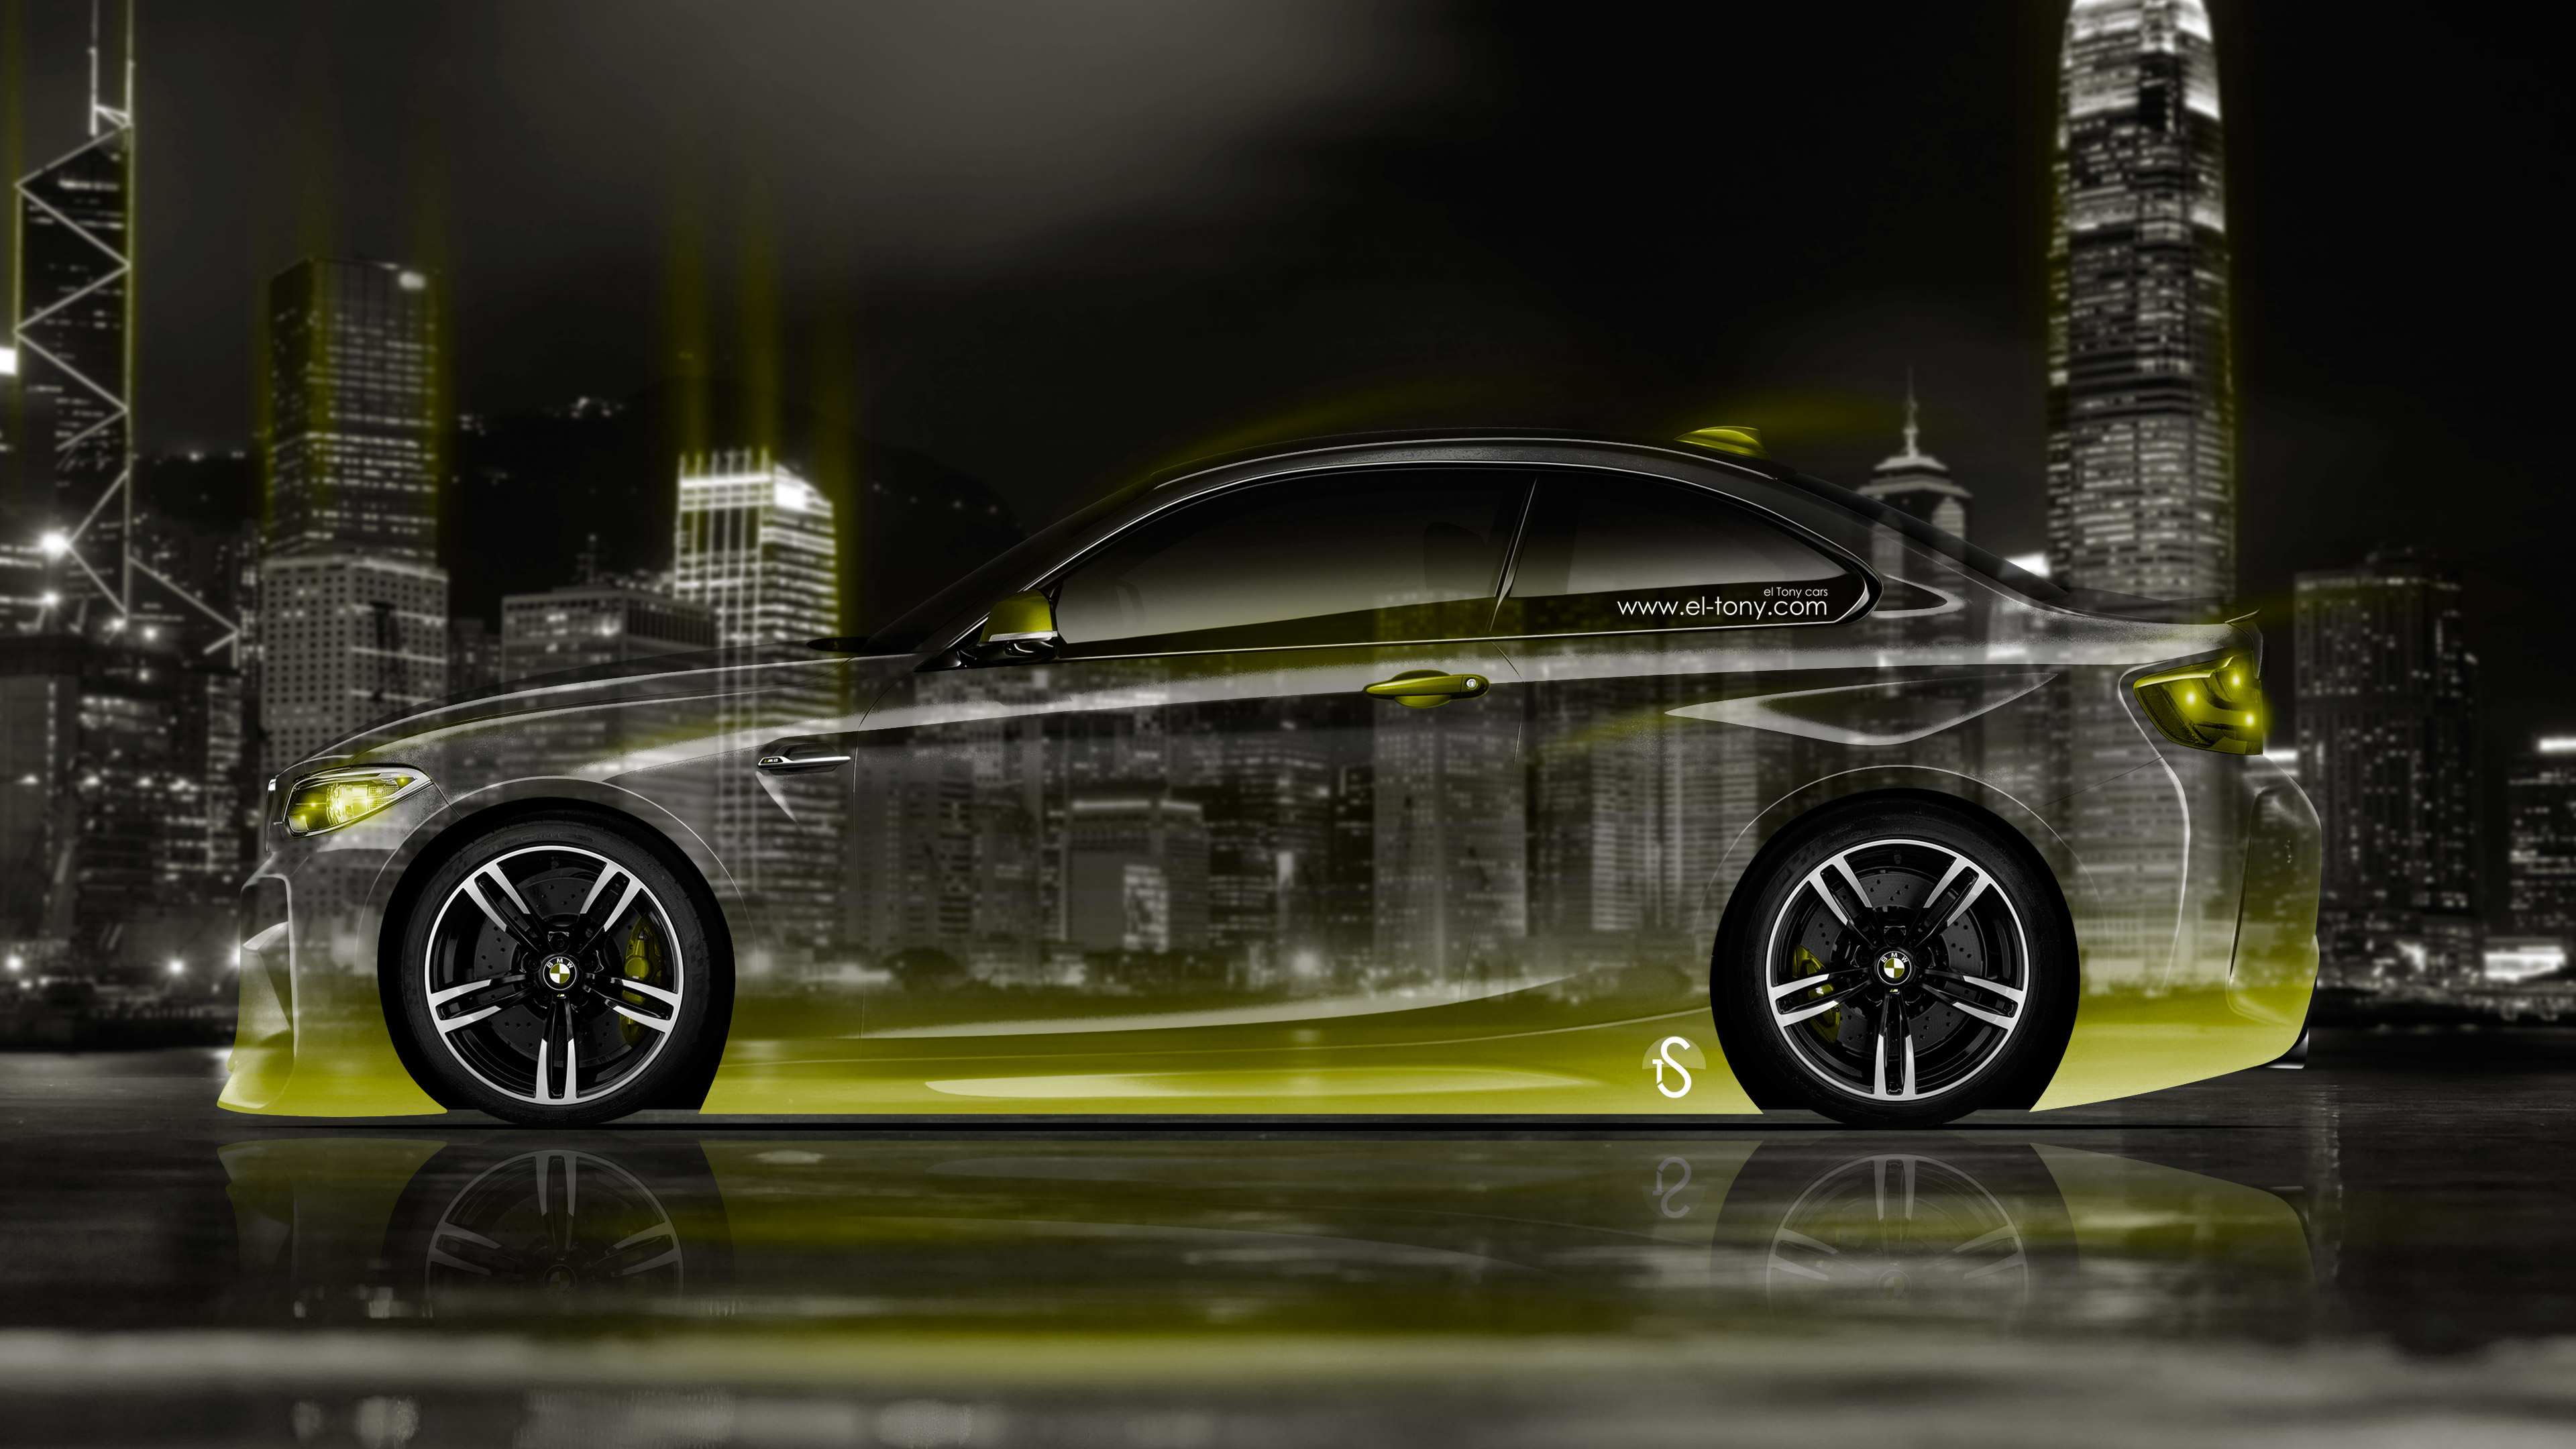 BMW M2 Coupe Side Crystal City Night Car 2016 Wallpapers ...